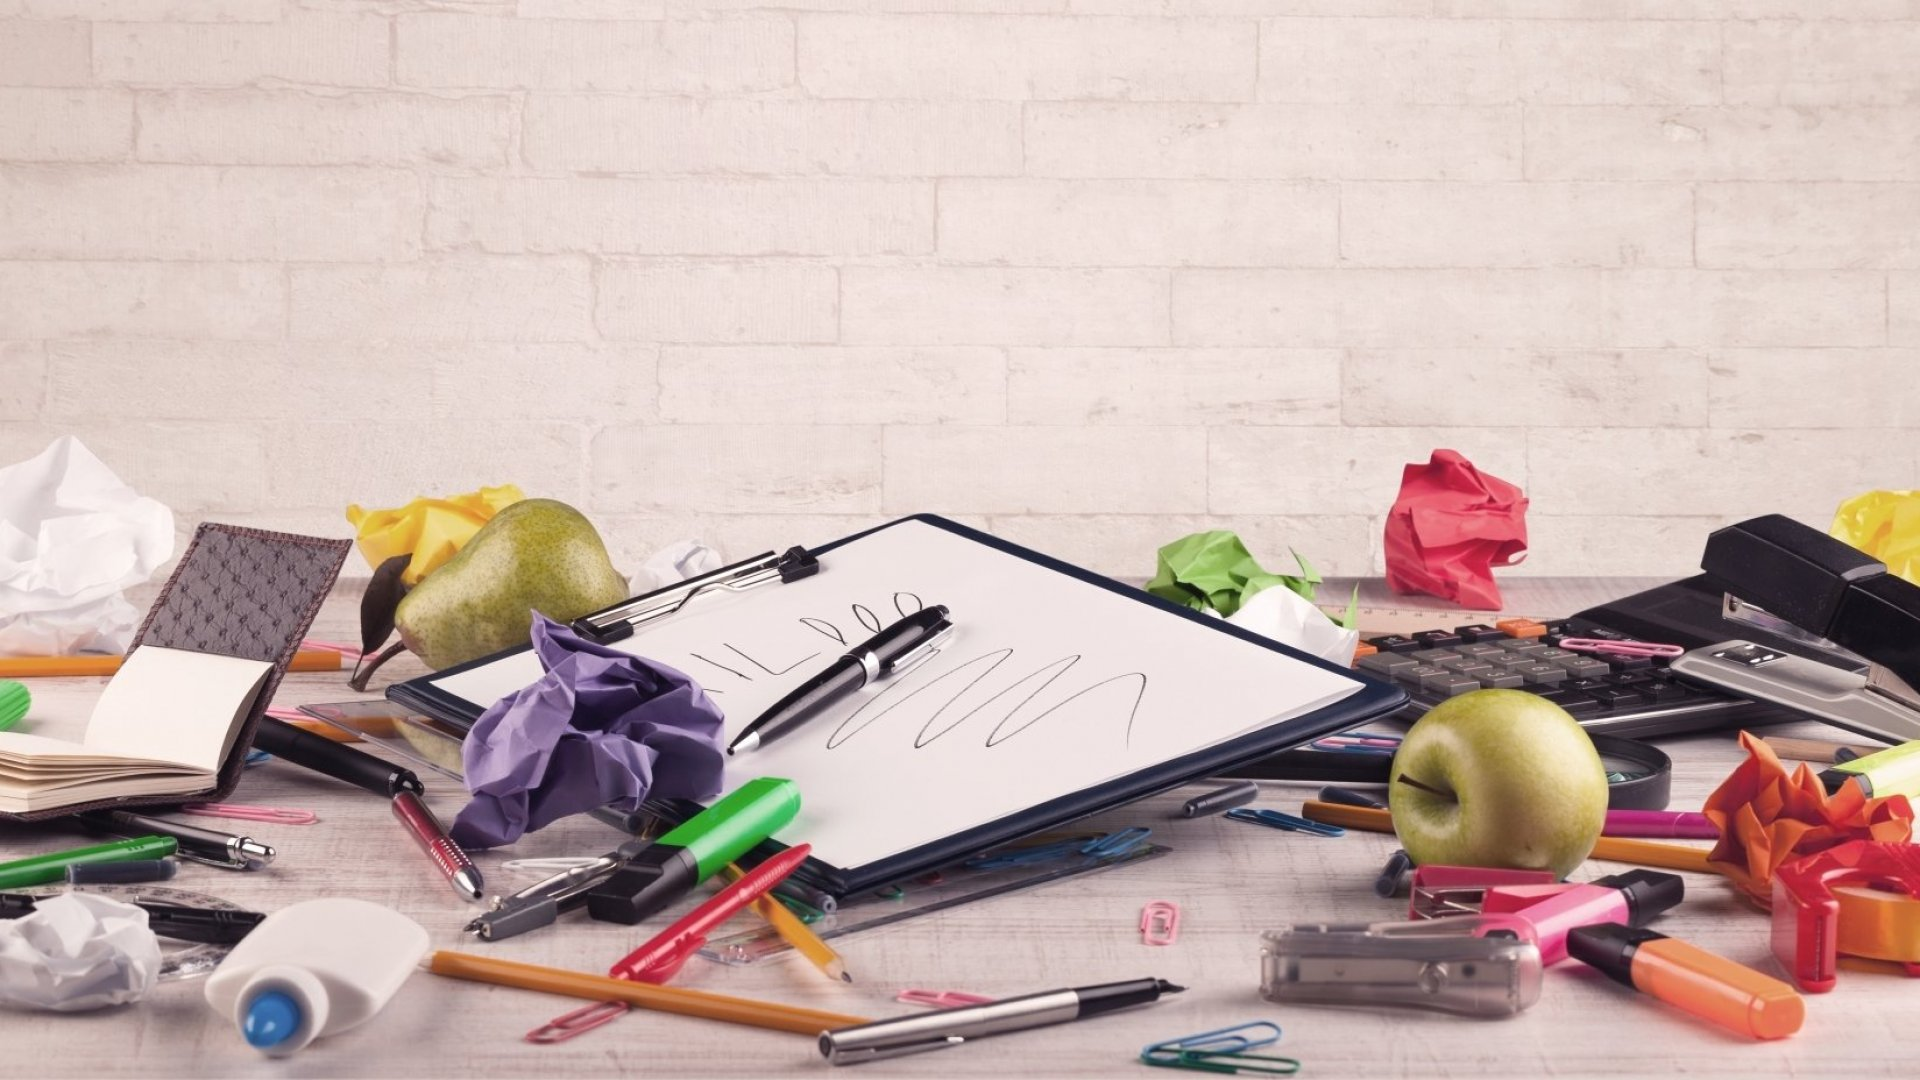 Want People to Like You? Clean Up Your Messy Office, Study Says